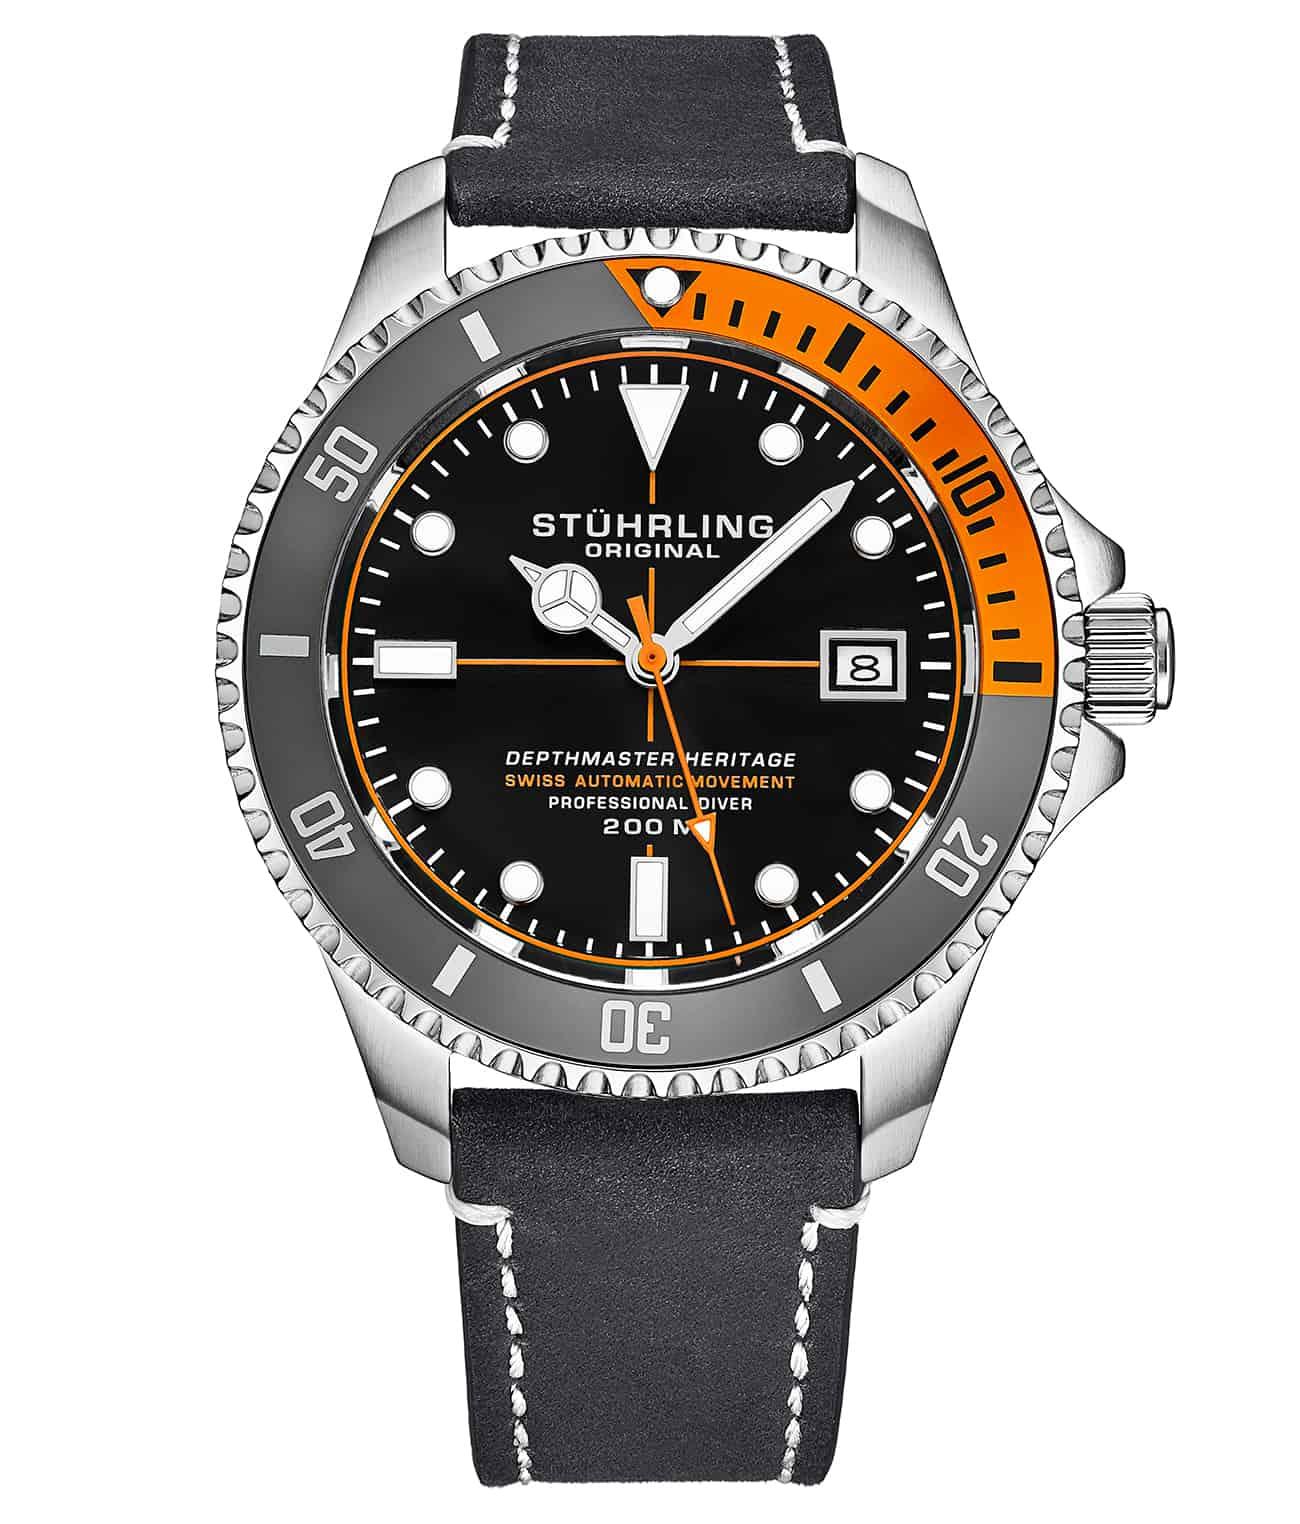 Swiss Automatic Depthmaster Heritage 883HL 42mm Diver